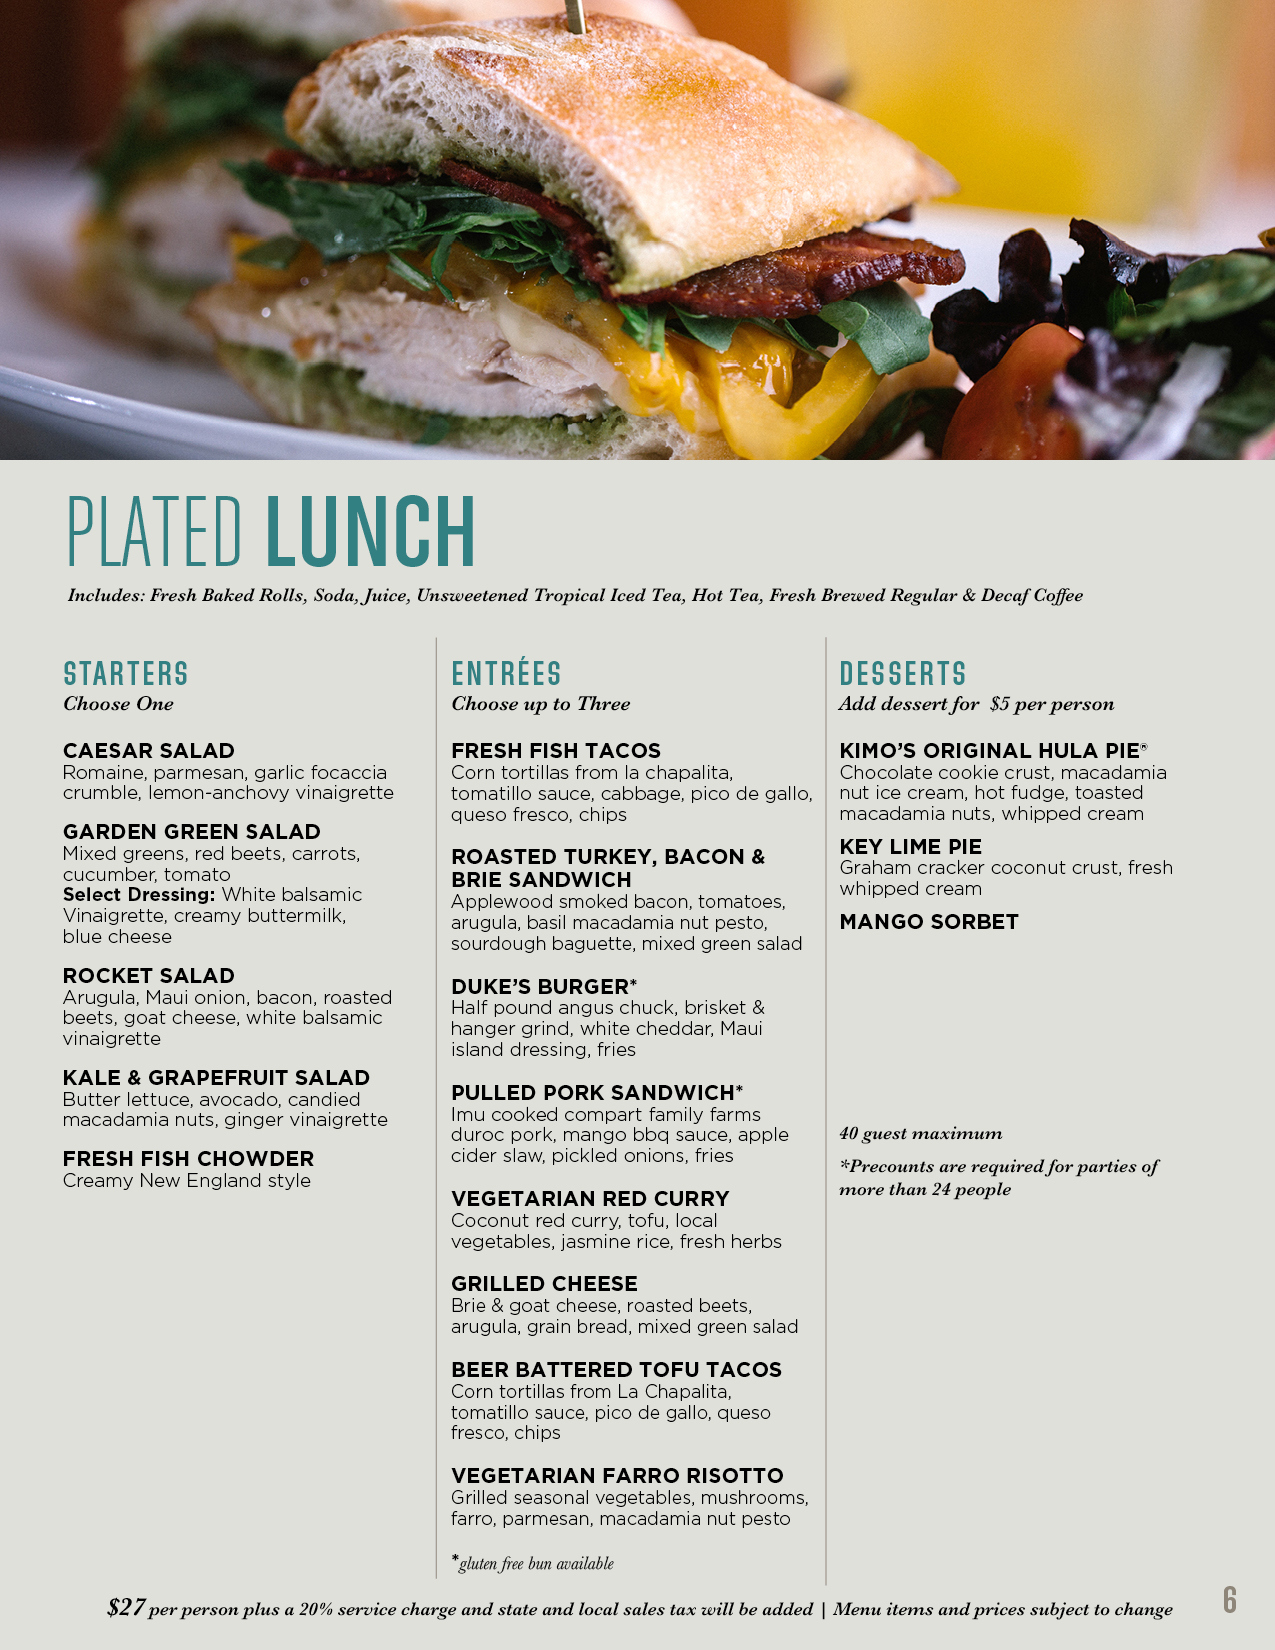 Plated lunch menu for banquets